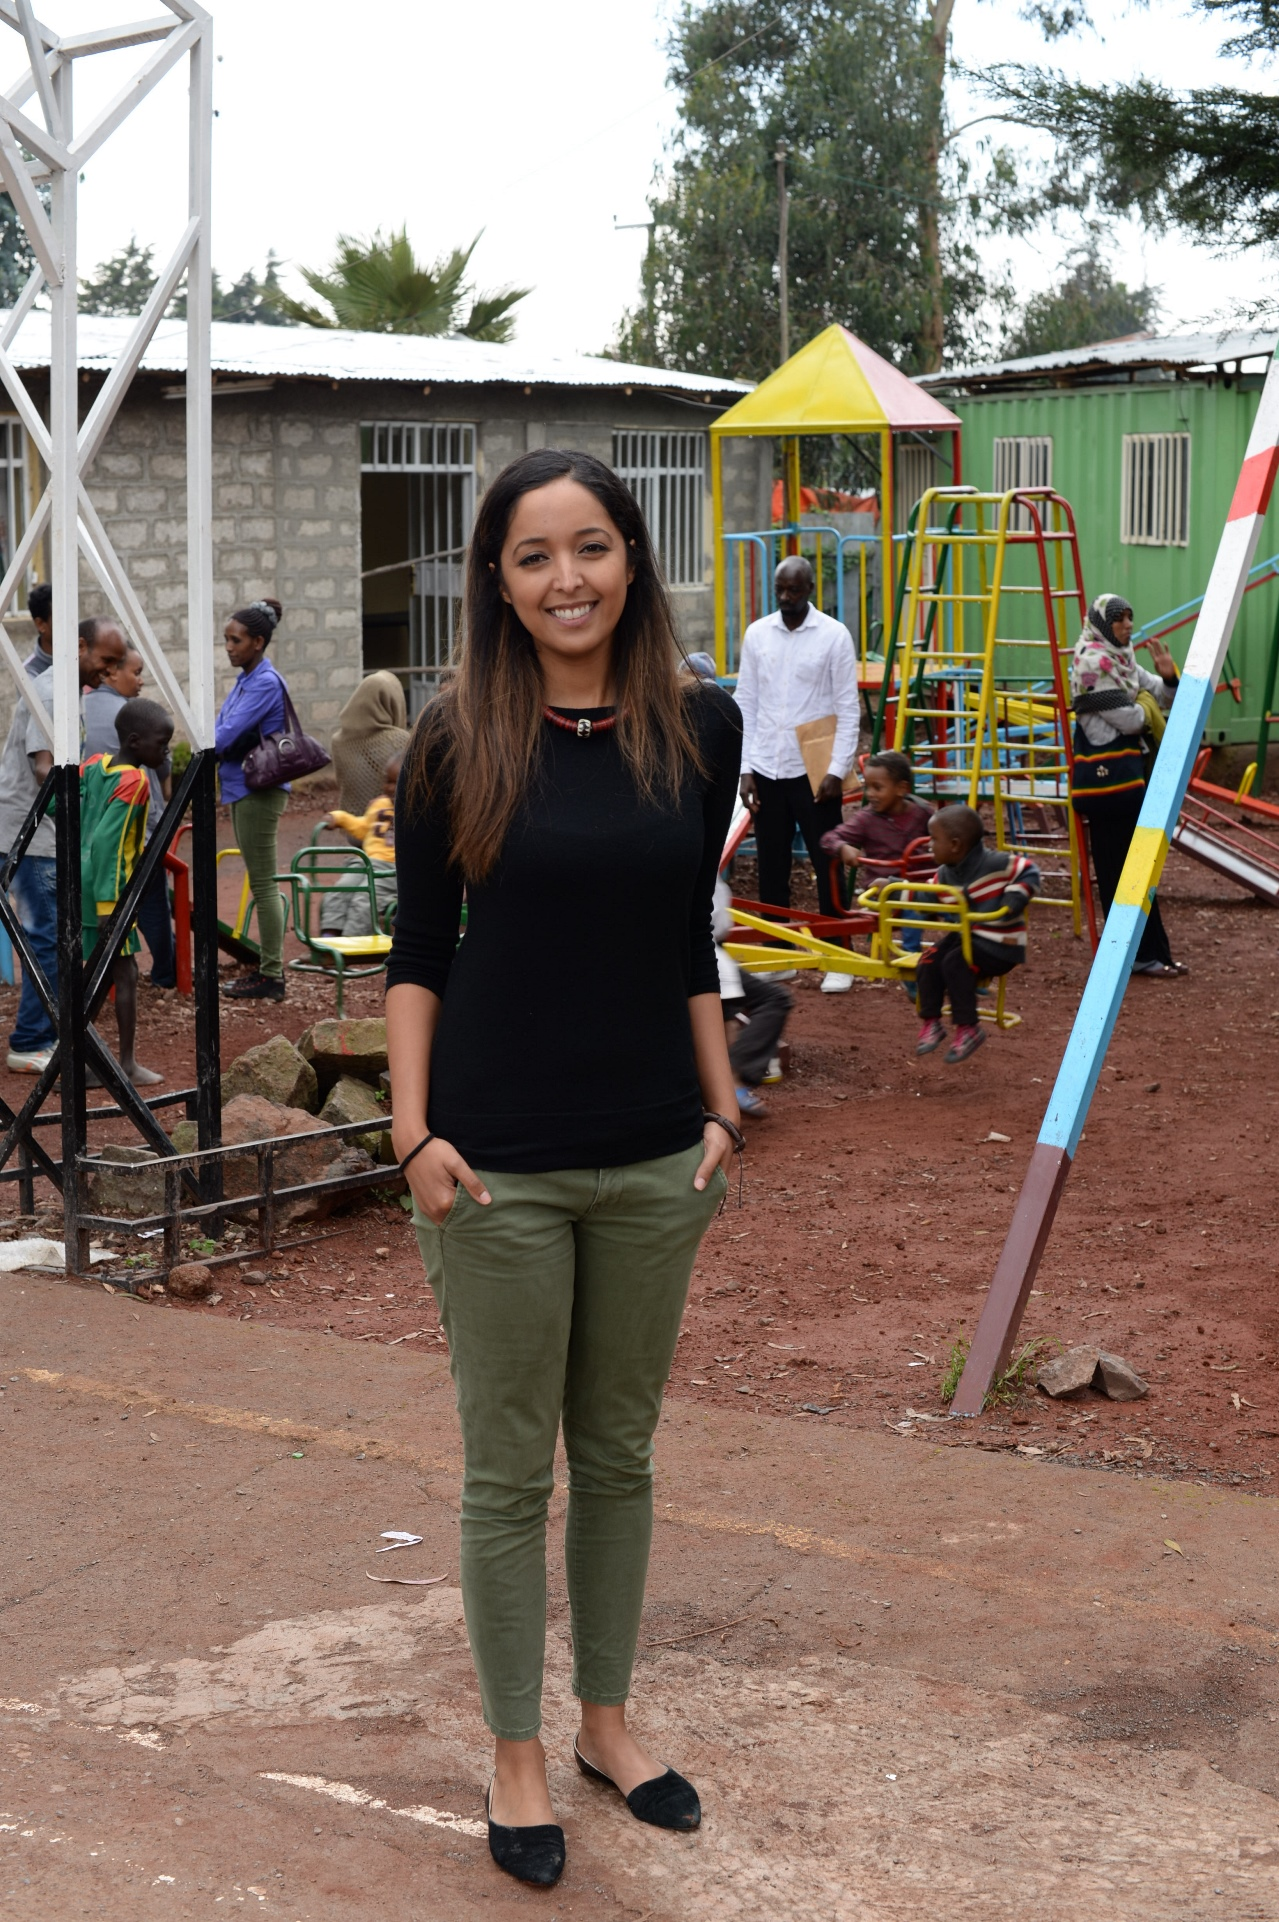 Young asian woman stands in front of a playground